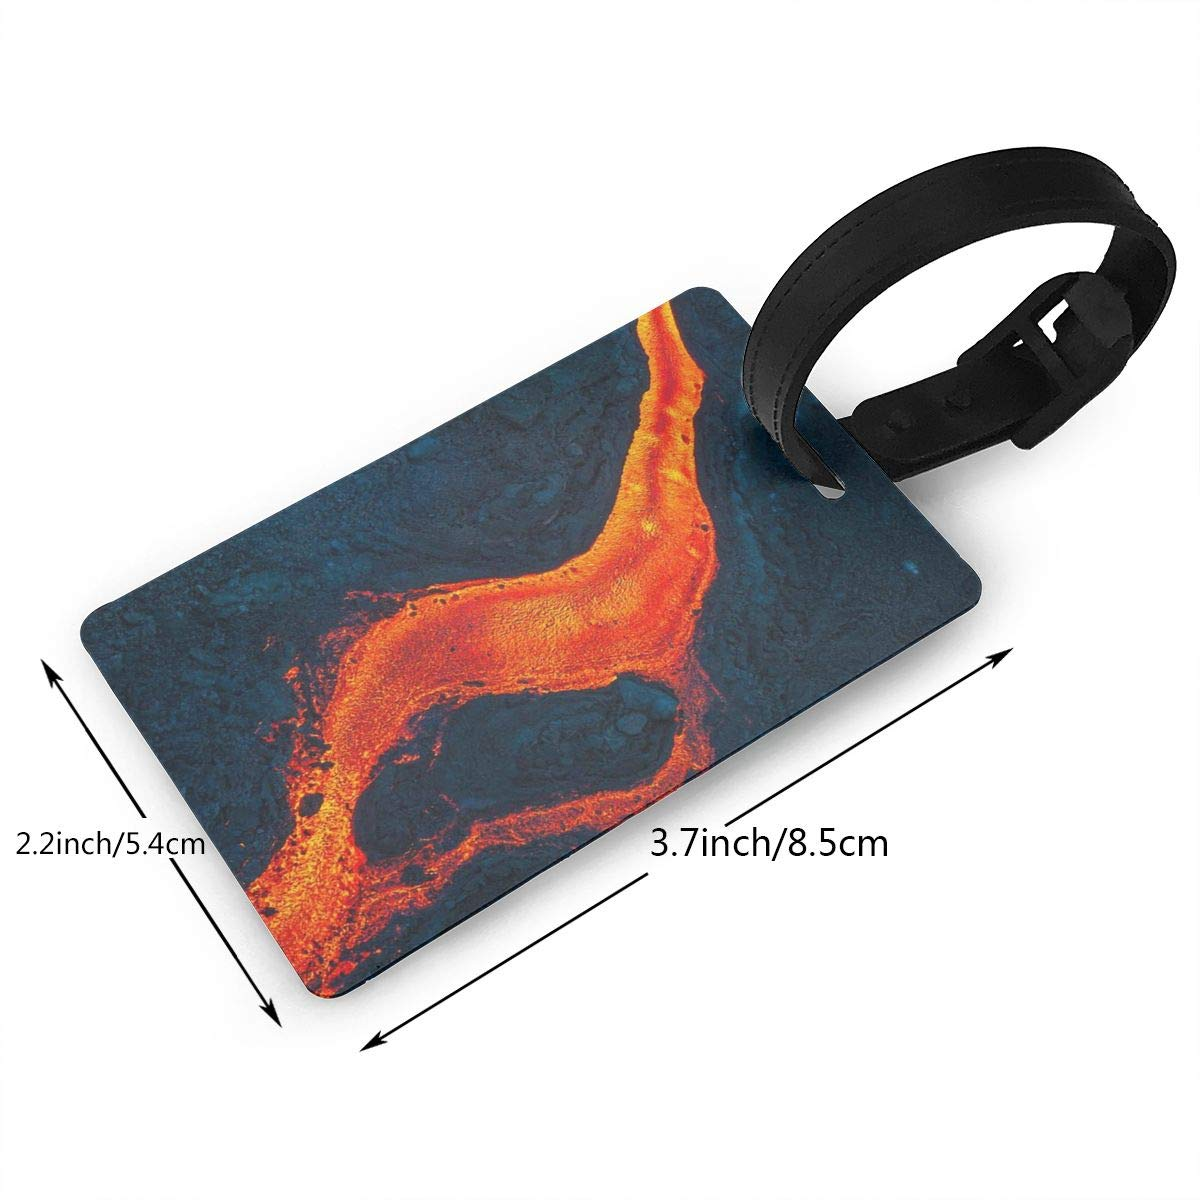 2 Pack Luggage Tags Volcano Erupting Handbag Tag For Travel Tags Accessories